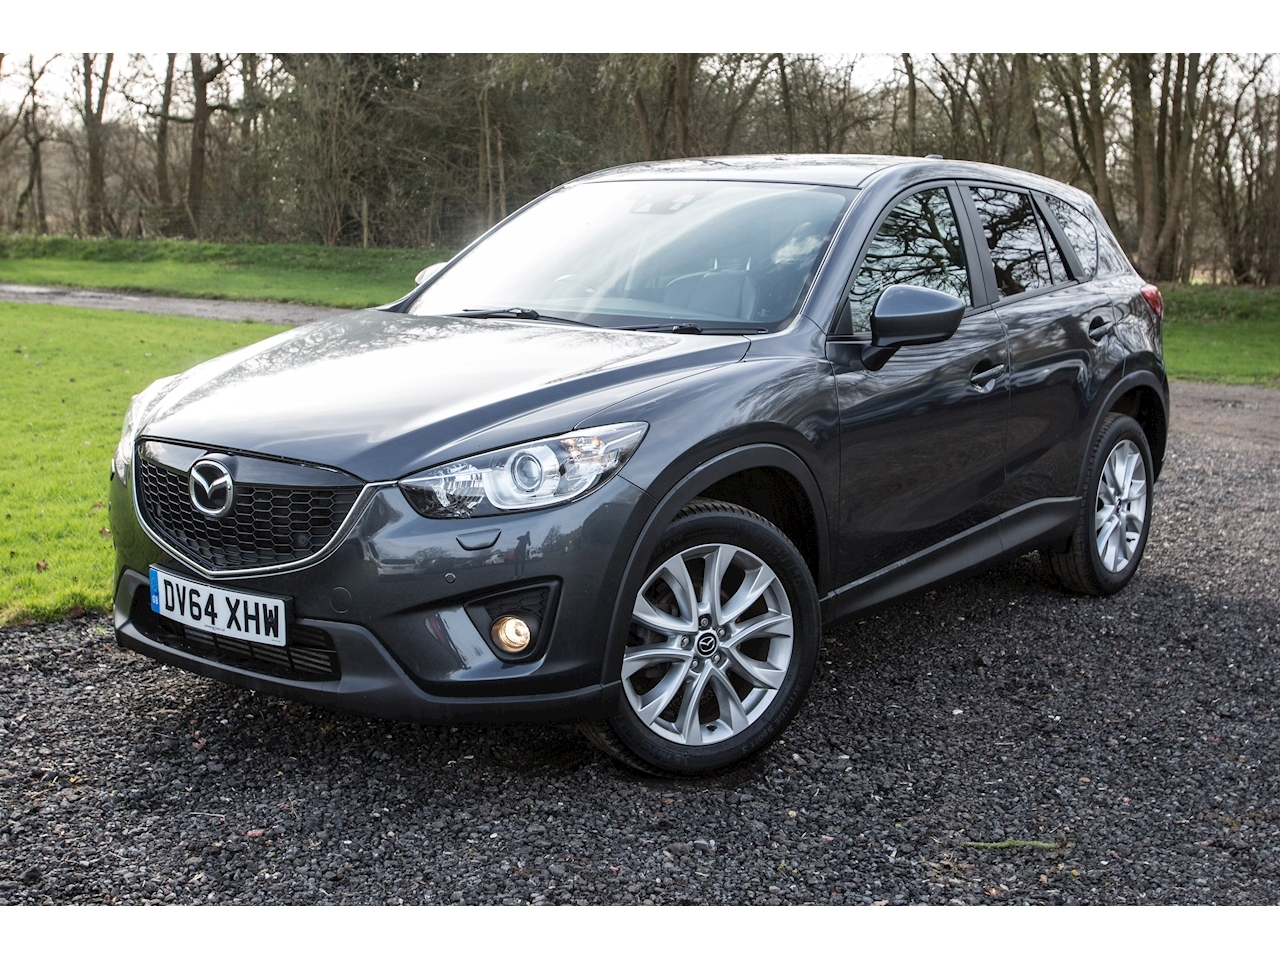 Cx-5 D Sport Nav Estate 2.2 Automatic Diesel